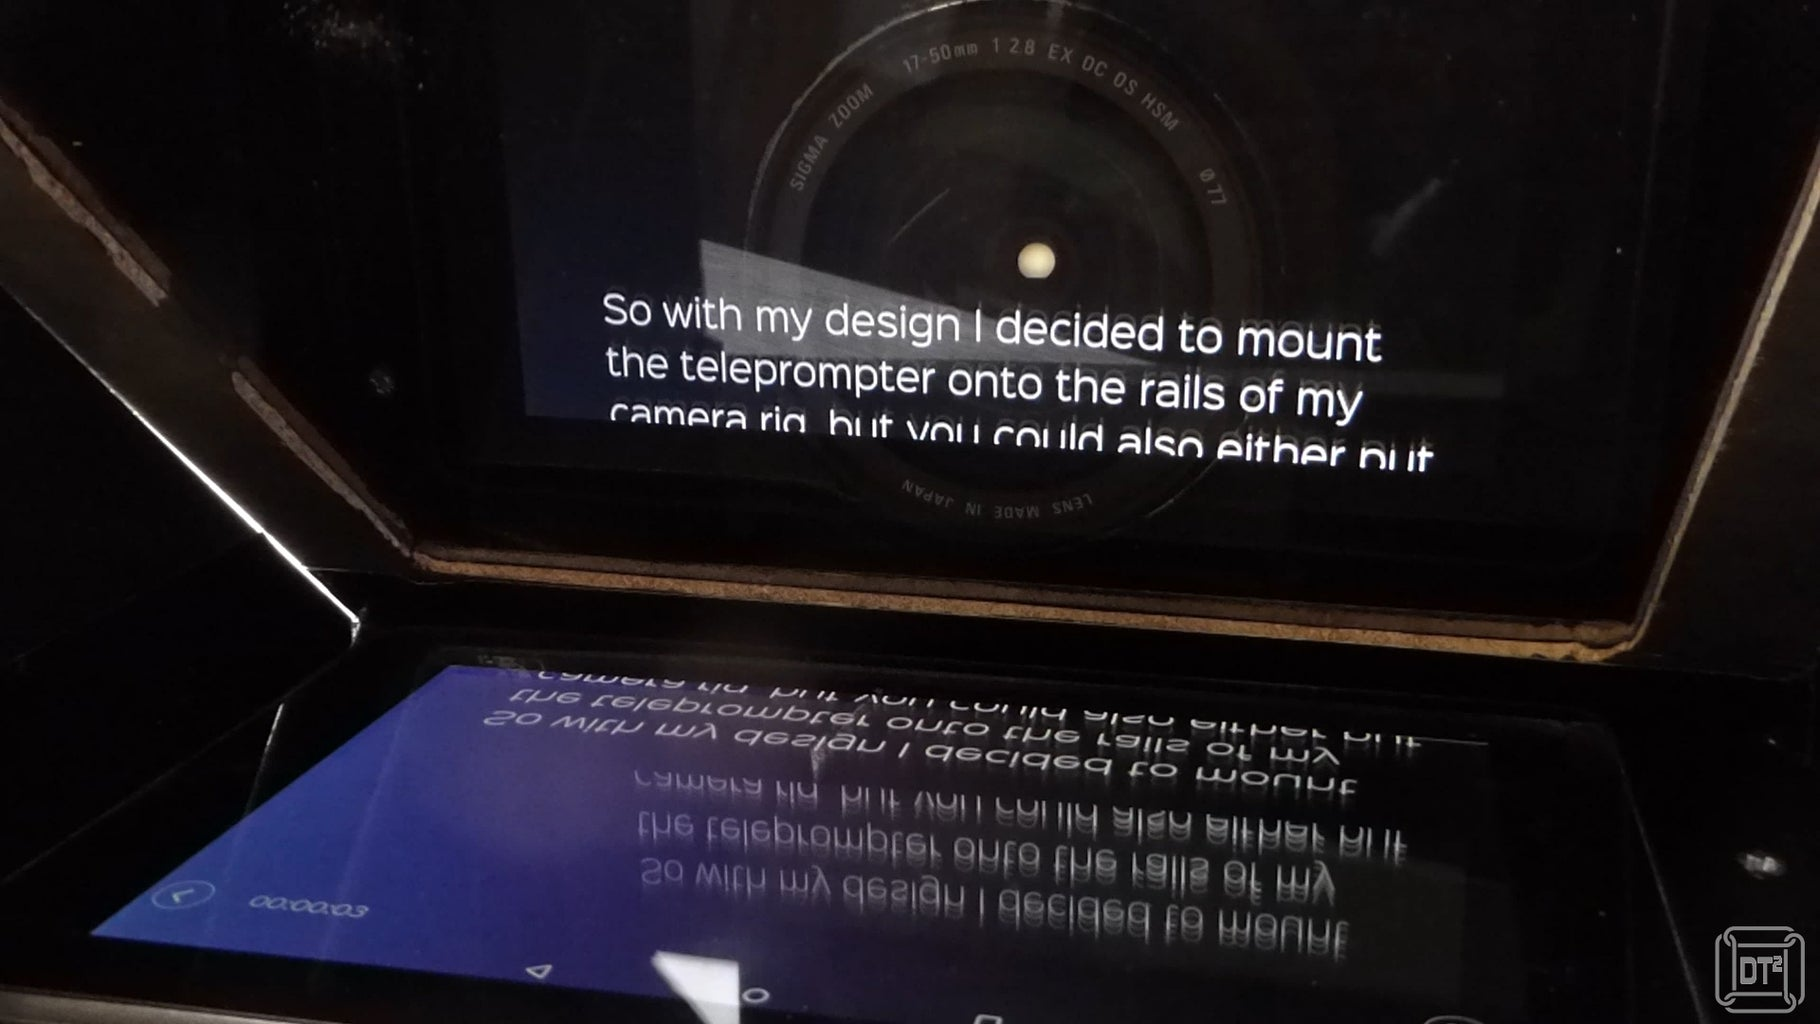 Using the Teleprompter